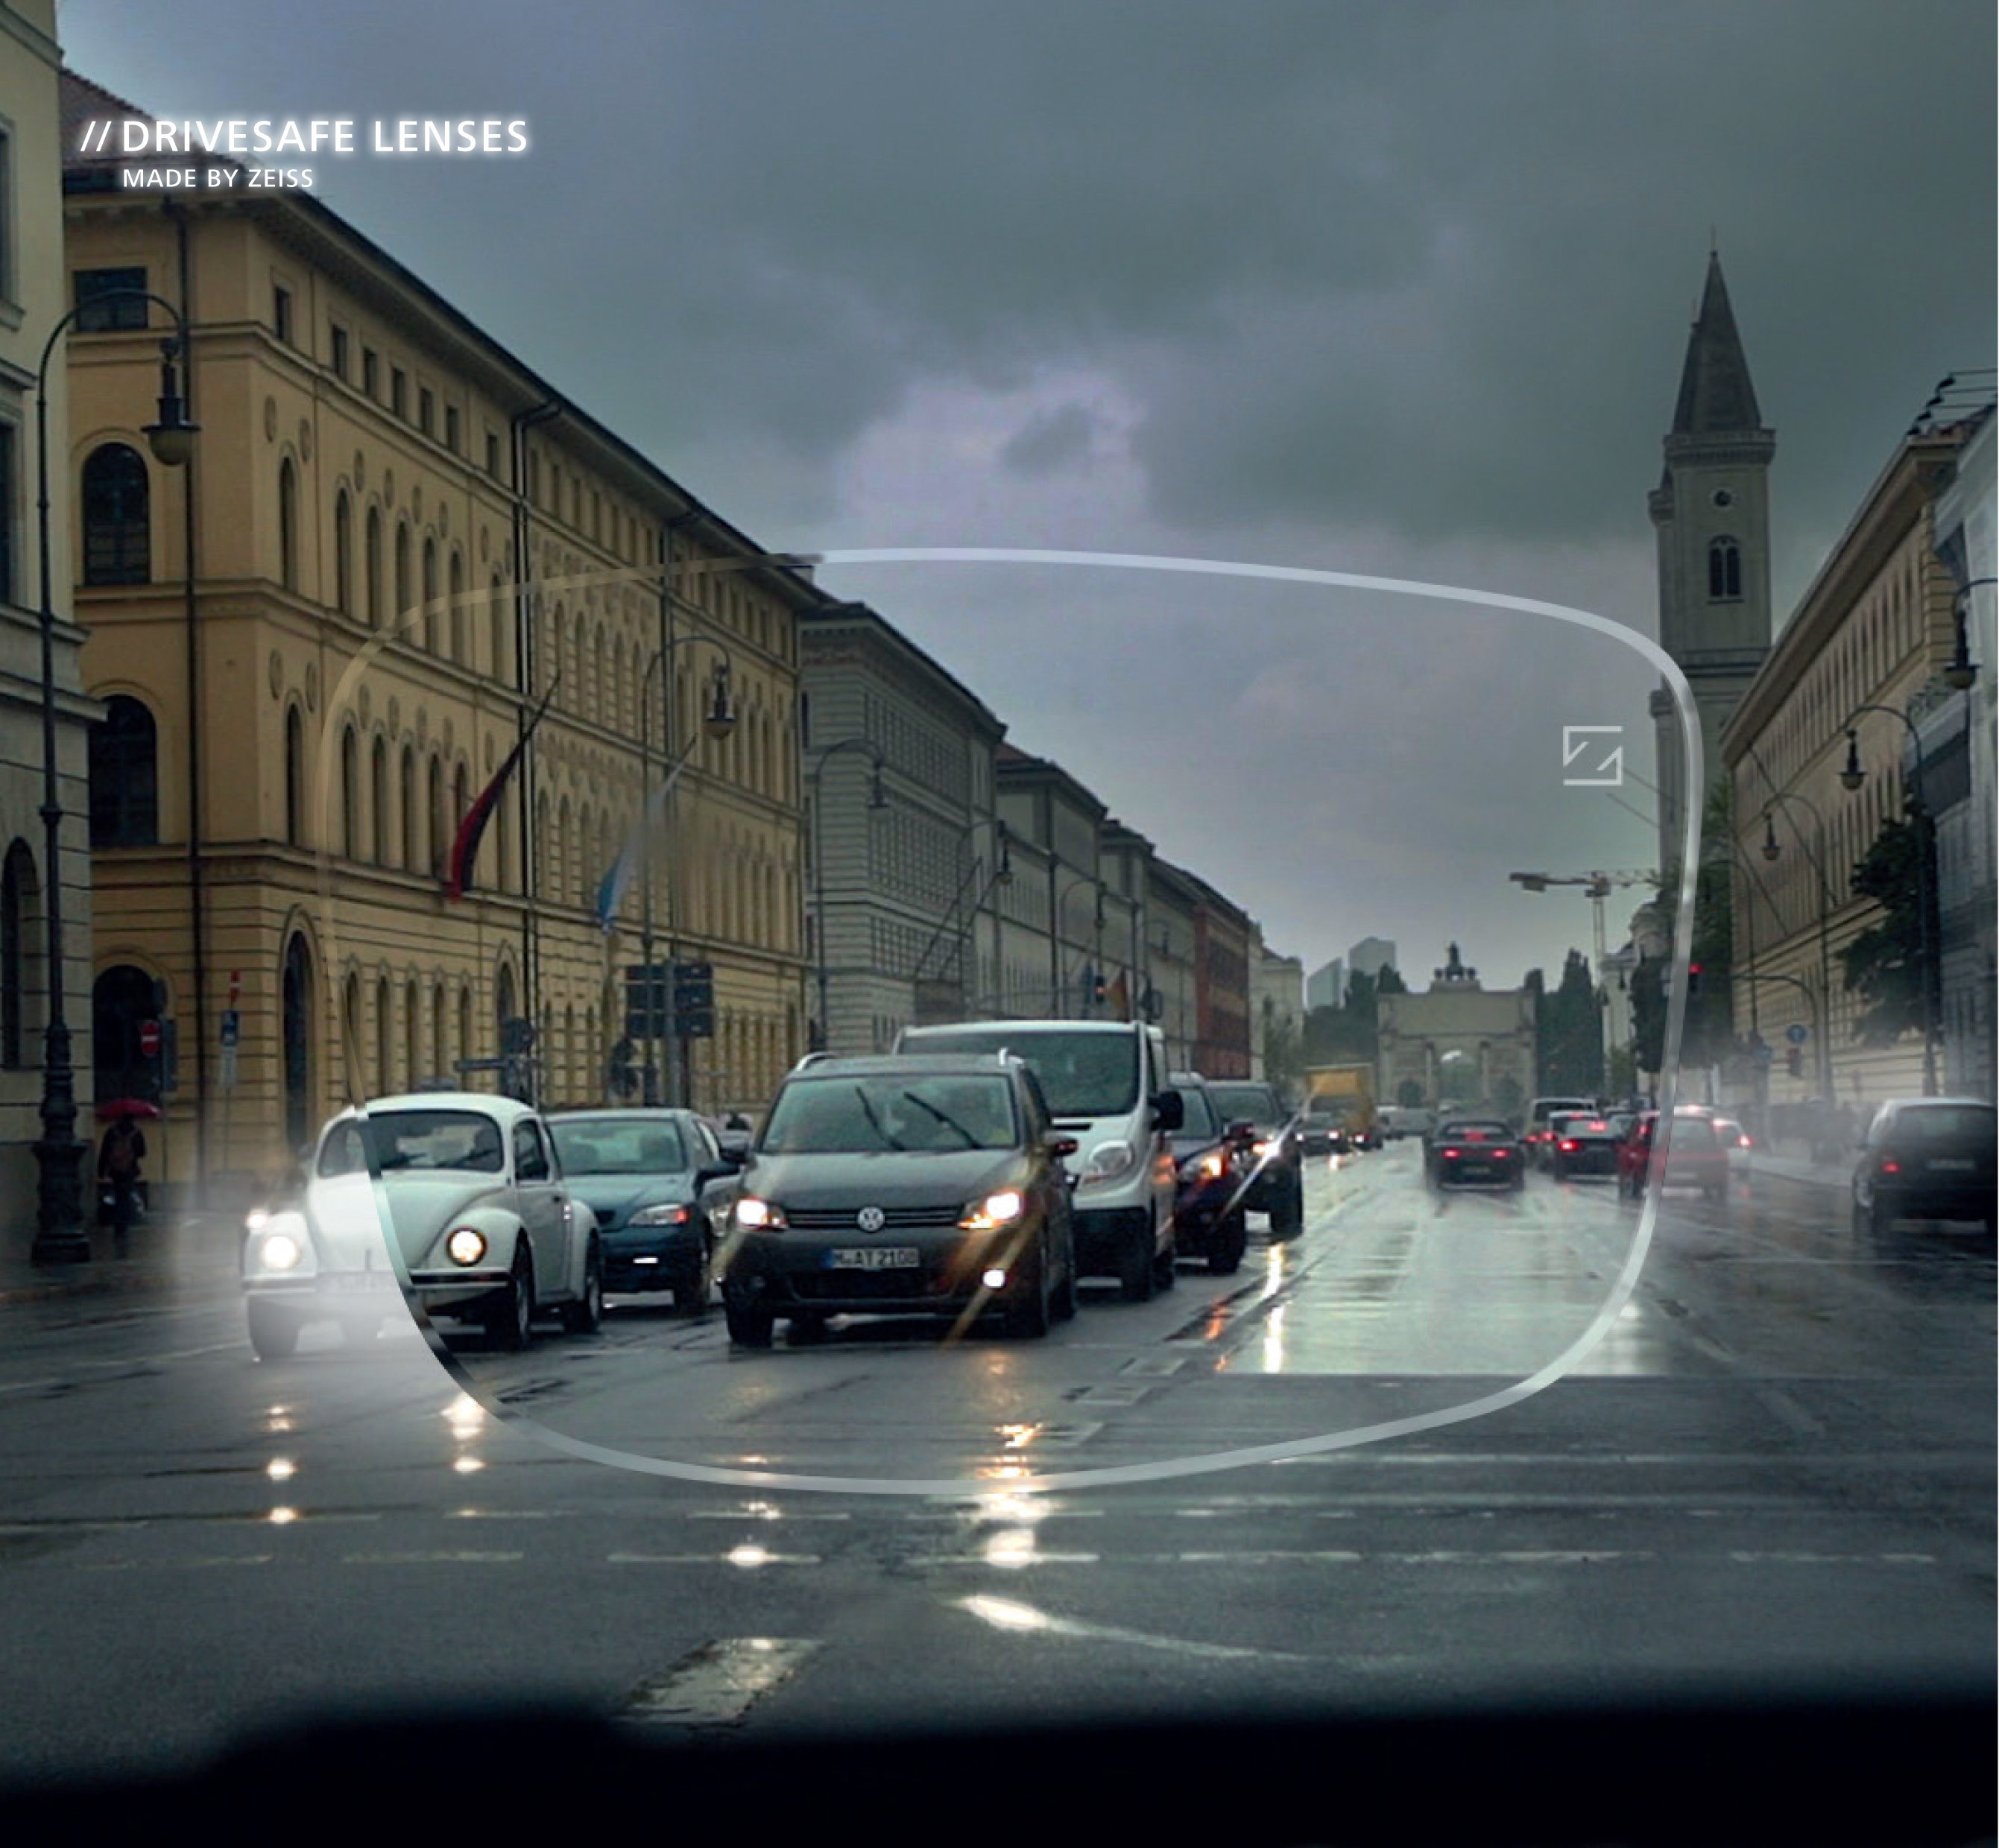 Zeiss DriveSafe in Bad Weather